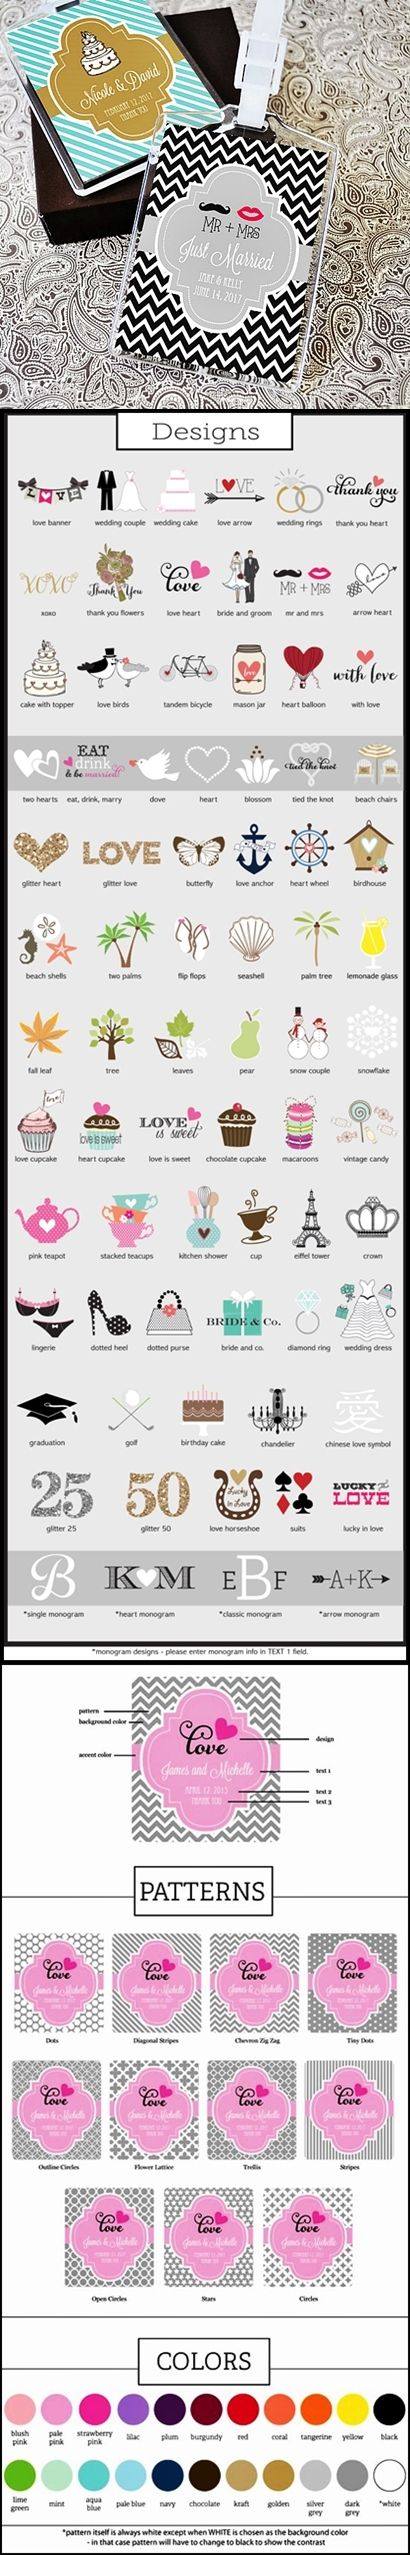 77 best Keychains & Luggage Tags images on Pinterest | Personalized ...